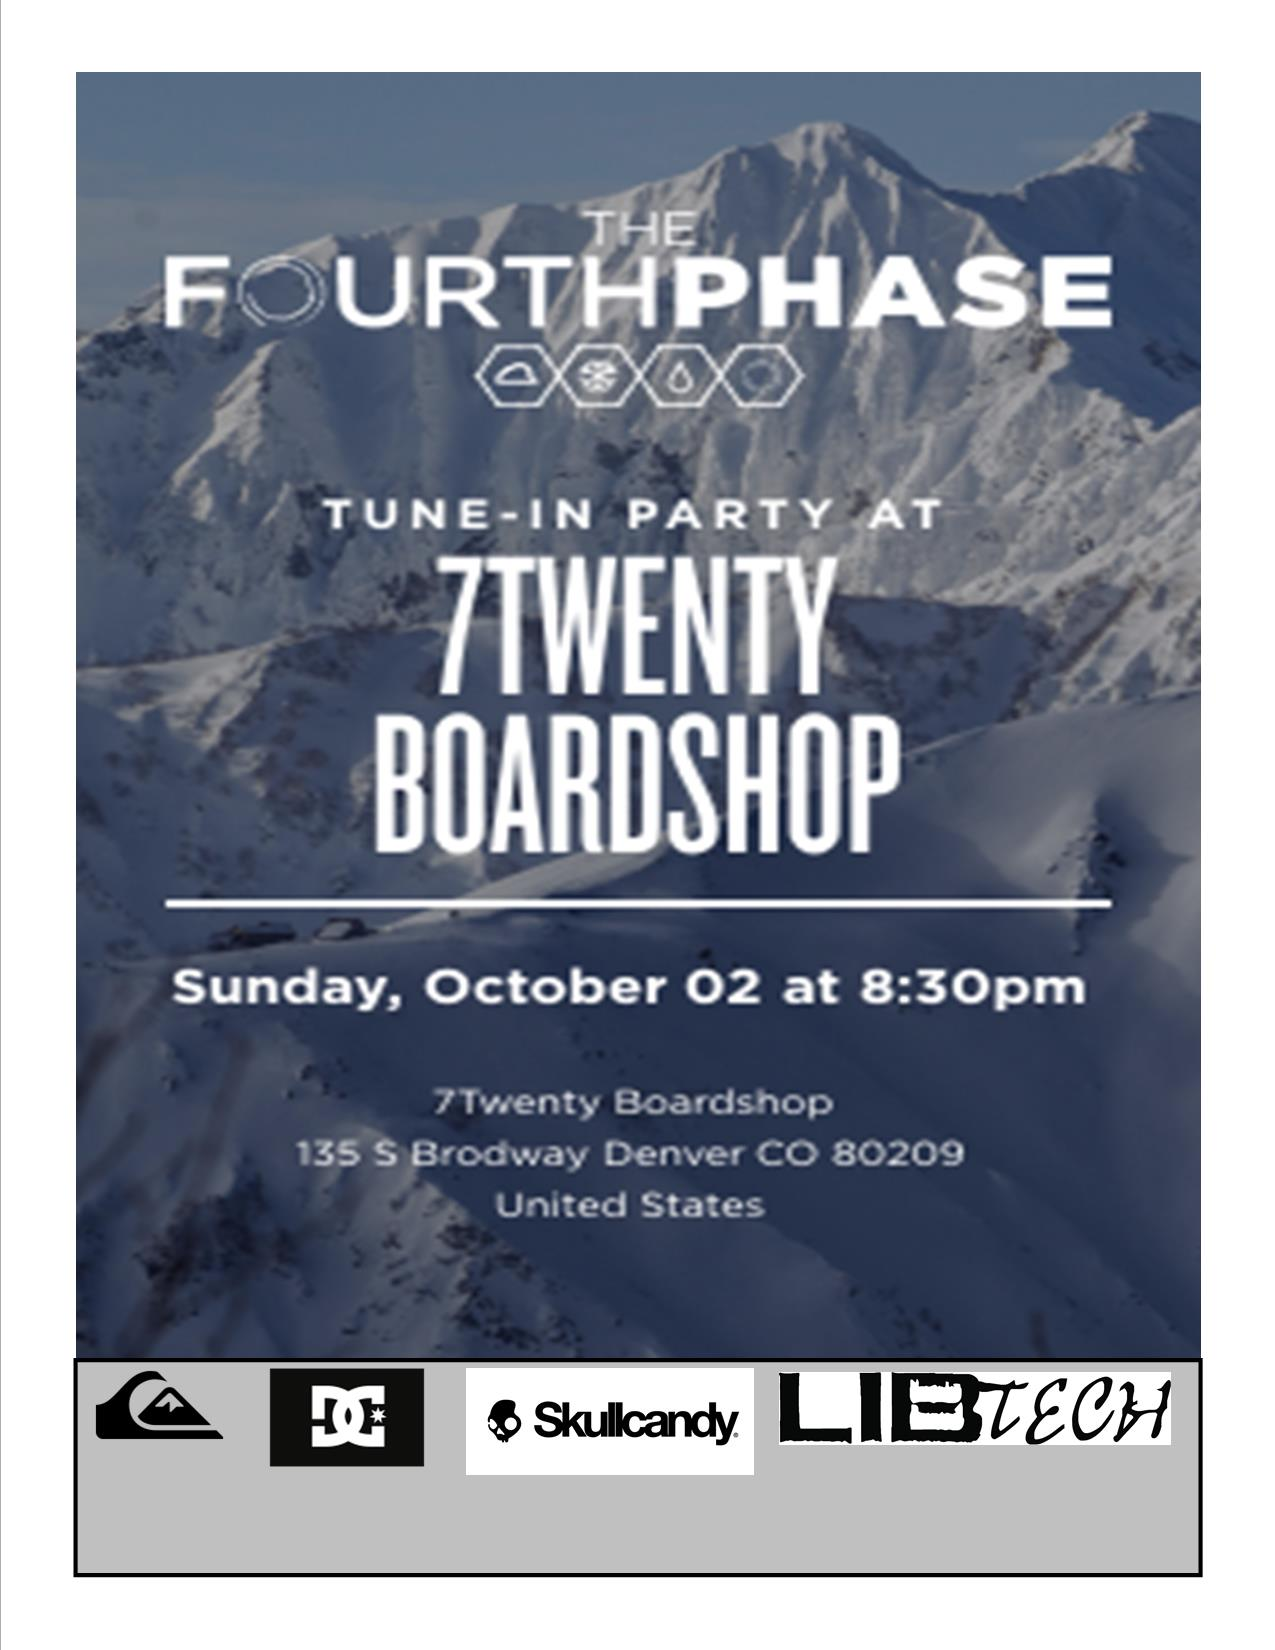 Red Bull and BrainFarm's The Fourth Phase video screening at 7Twenty Boardshop Sunday october 2nd